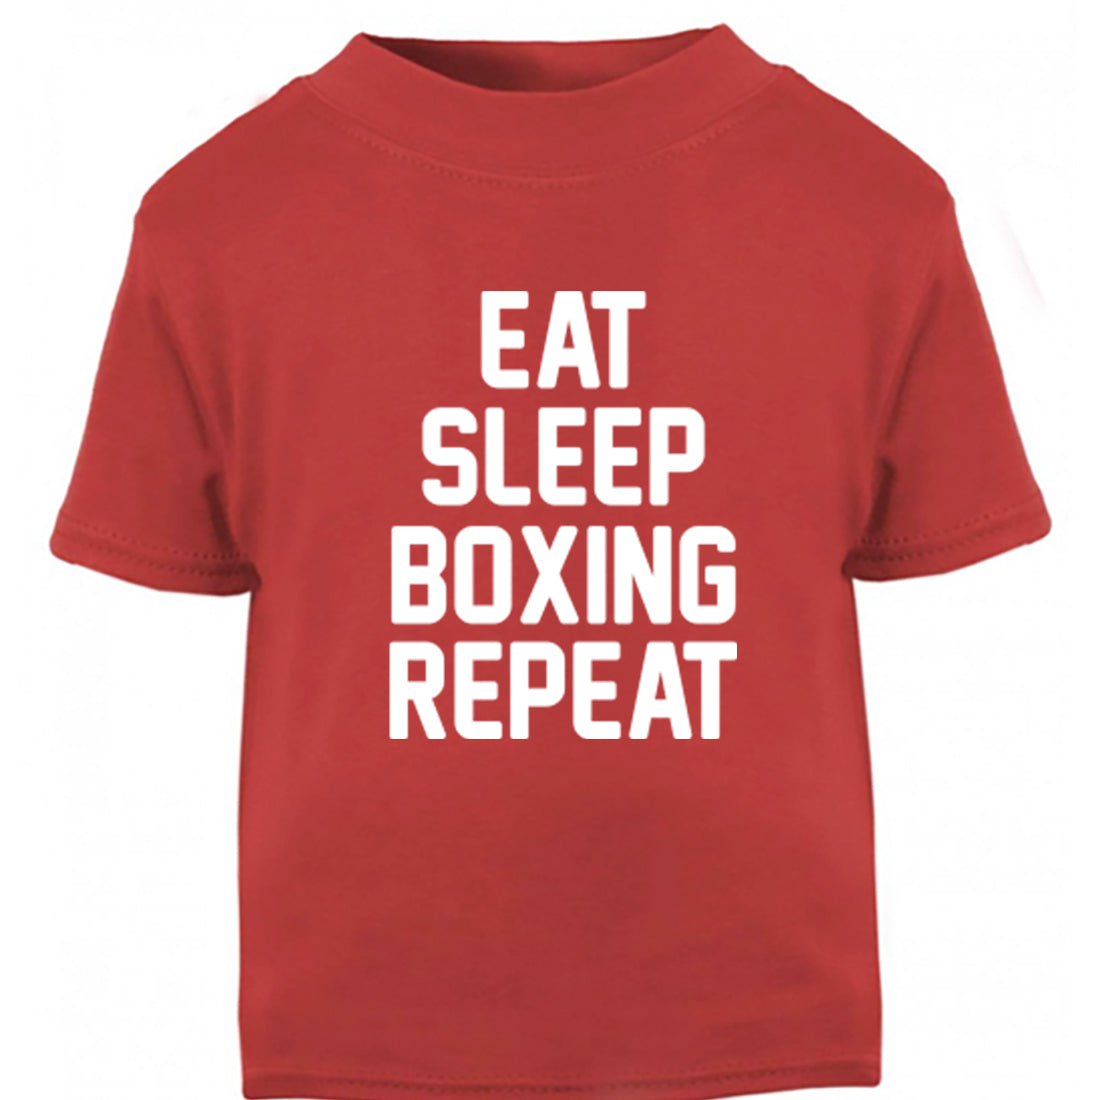 Eat Sleep Boxing Repeat Childrens Ages 3/4-12/14 Unisex Fit T-Shirt K0882 - Illustrated Identity Ltd.